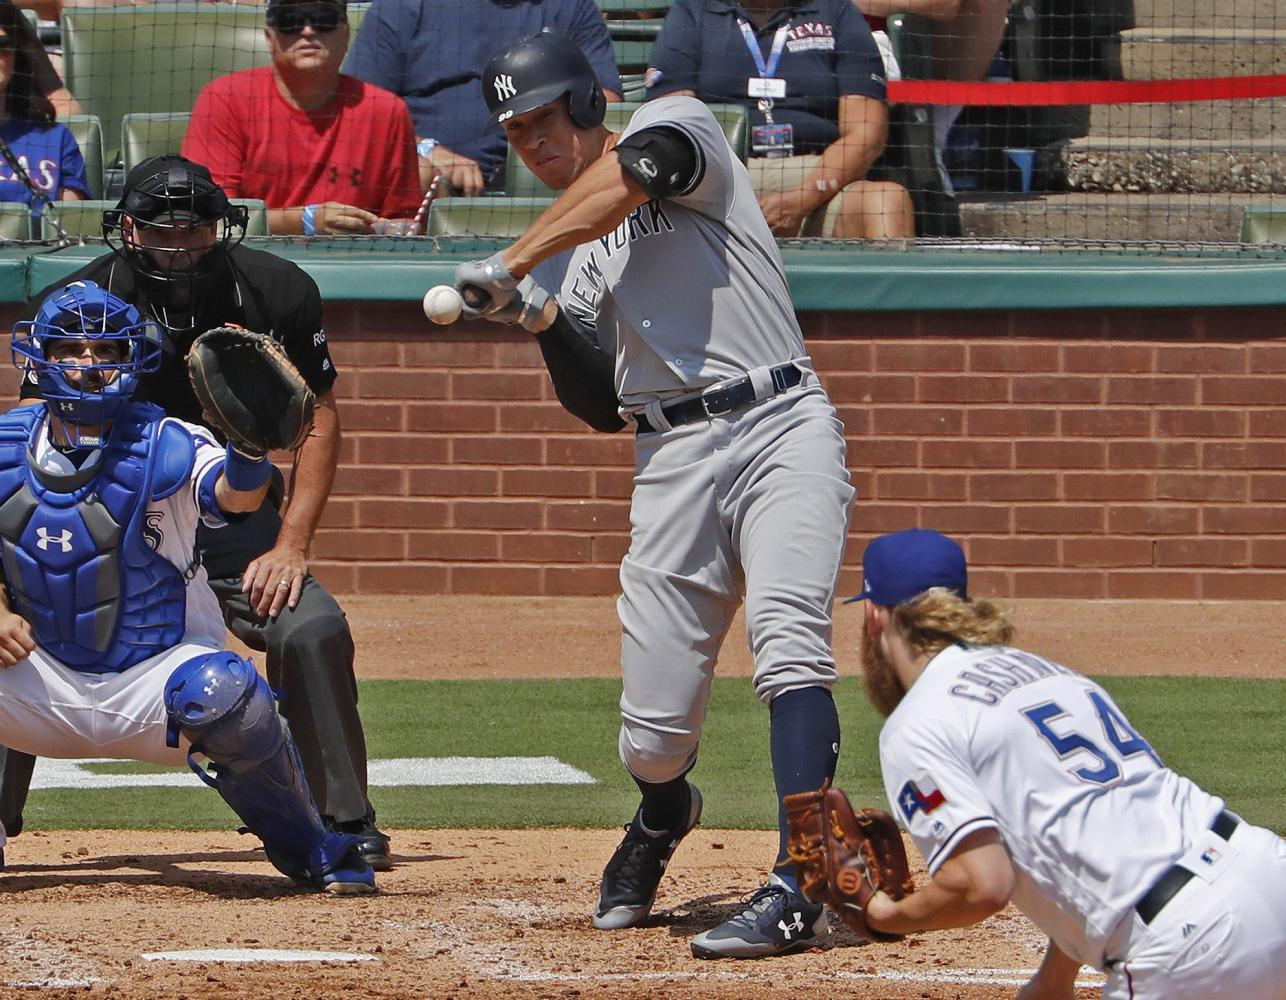 Aaron Judge has hit 45 home runs in his rookie season with the New York Yankees.